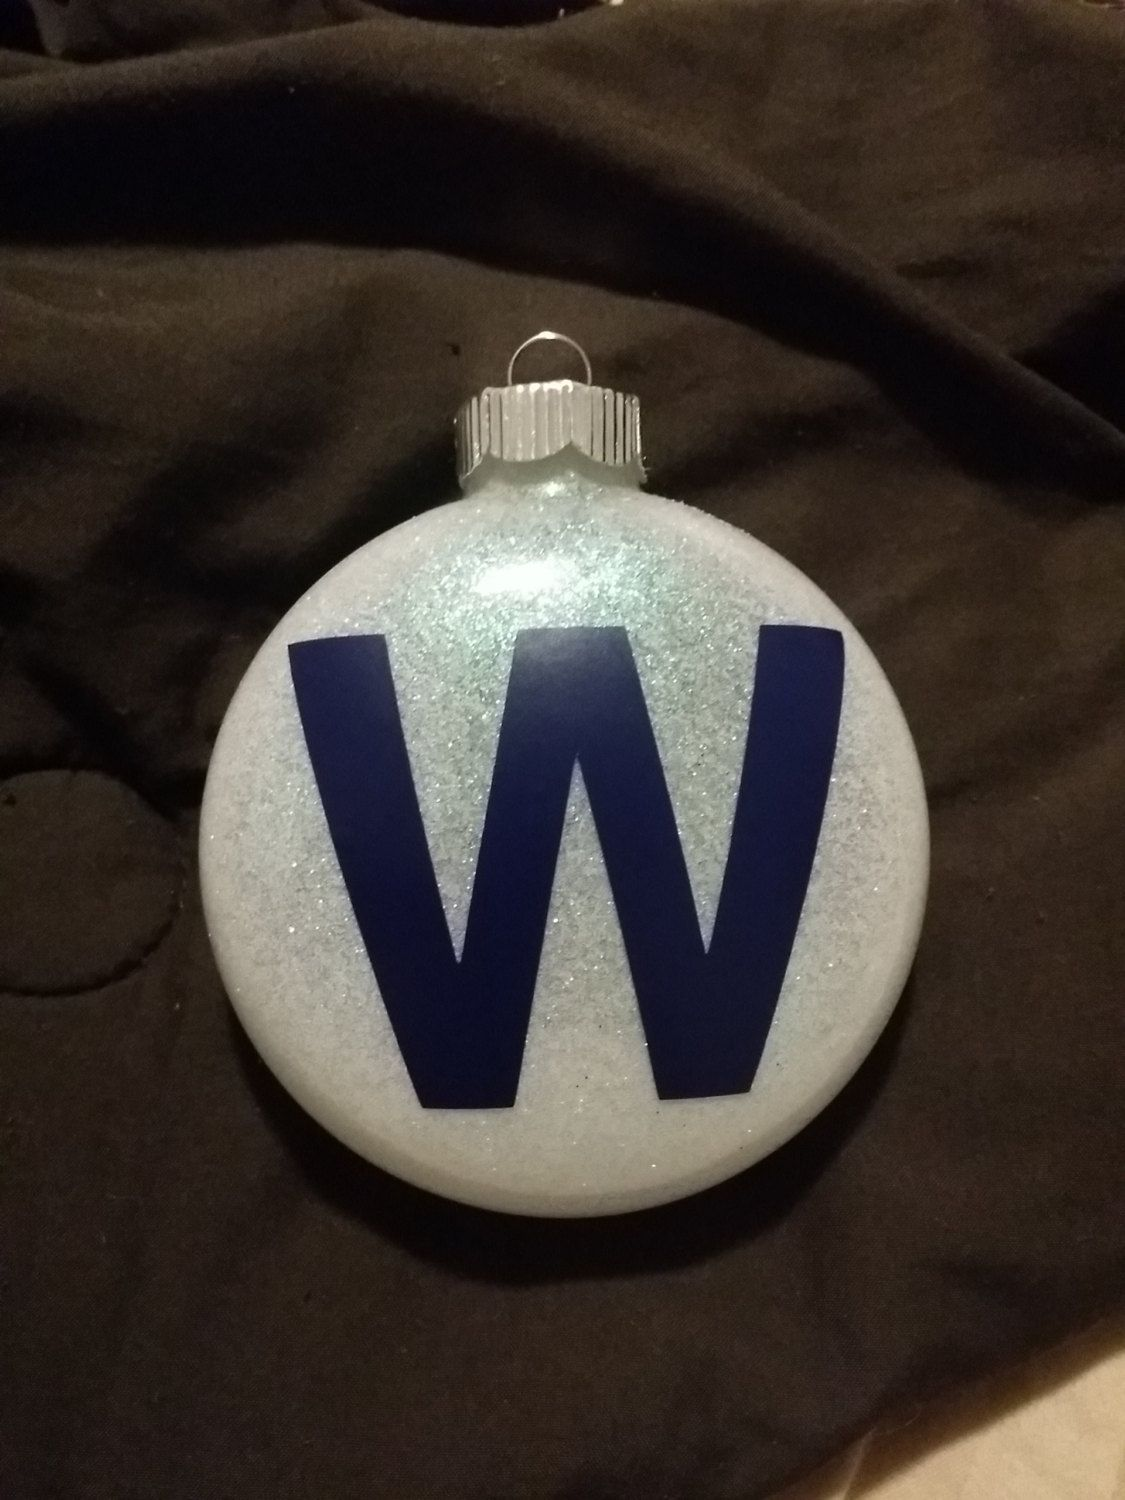 Handmade christmas ornaments on etsy - Chicago Cubs Fly The W Glitter Ornament By Merrygerricreations On Etsy Glitter Ornamentschristmas Ornamentsdiy